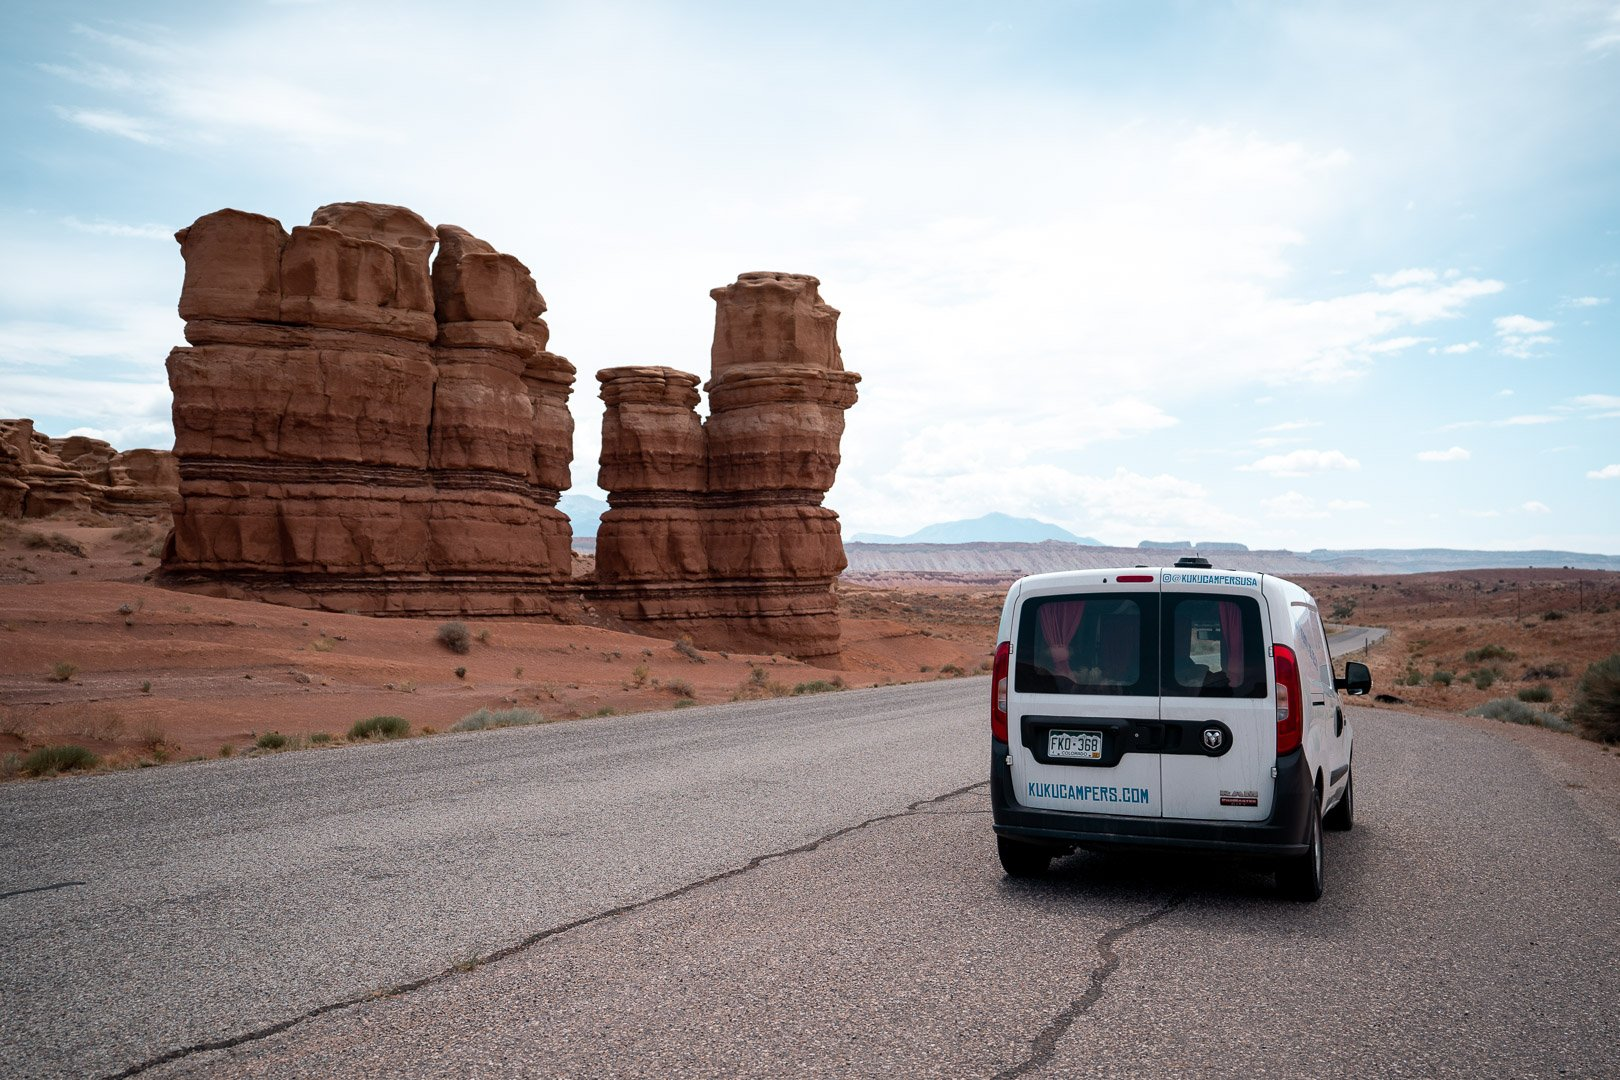 A camper van parked on the road with a large rock formation in Capitol Reef, Utah